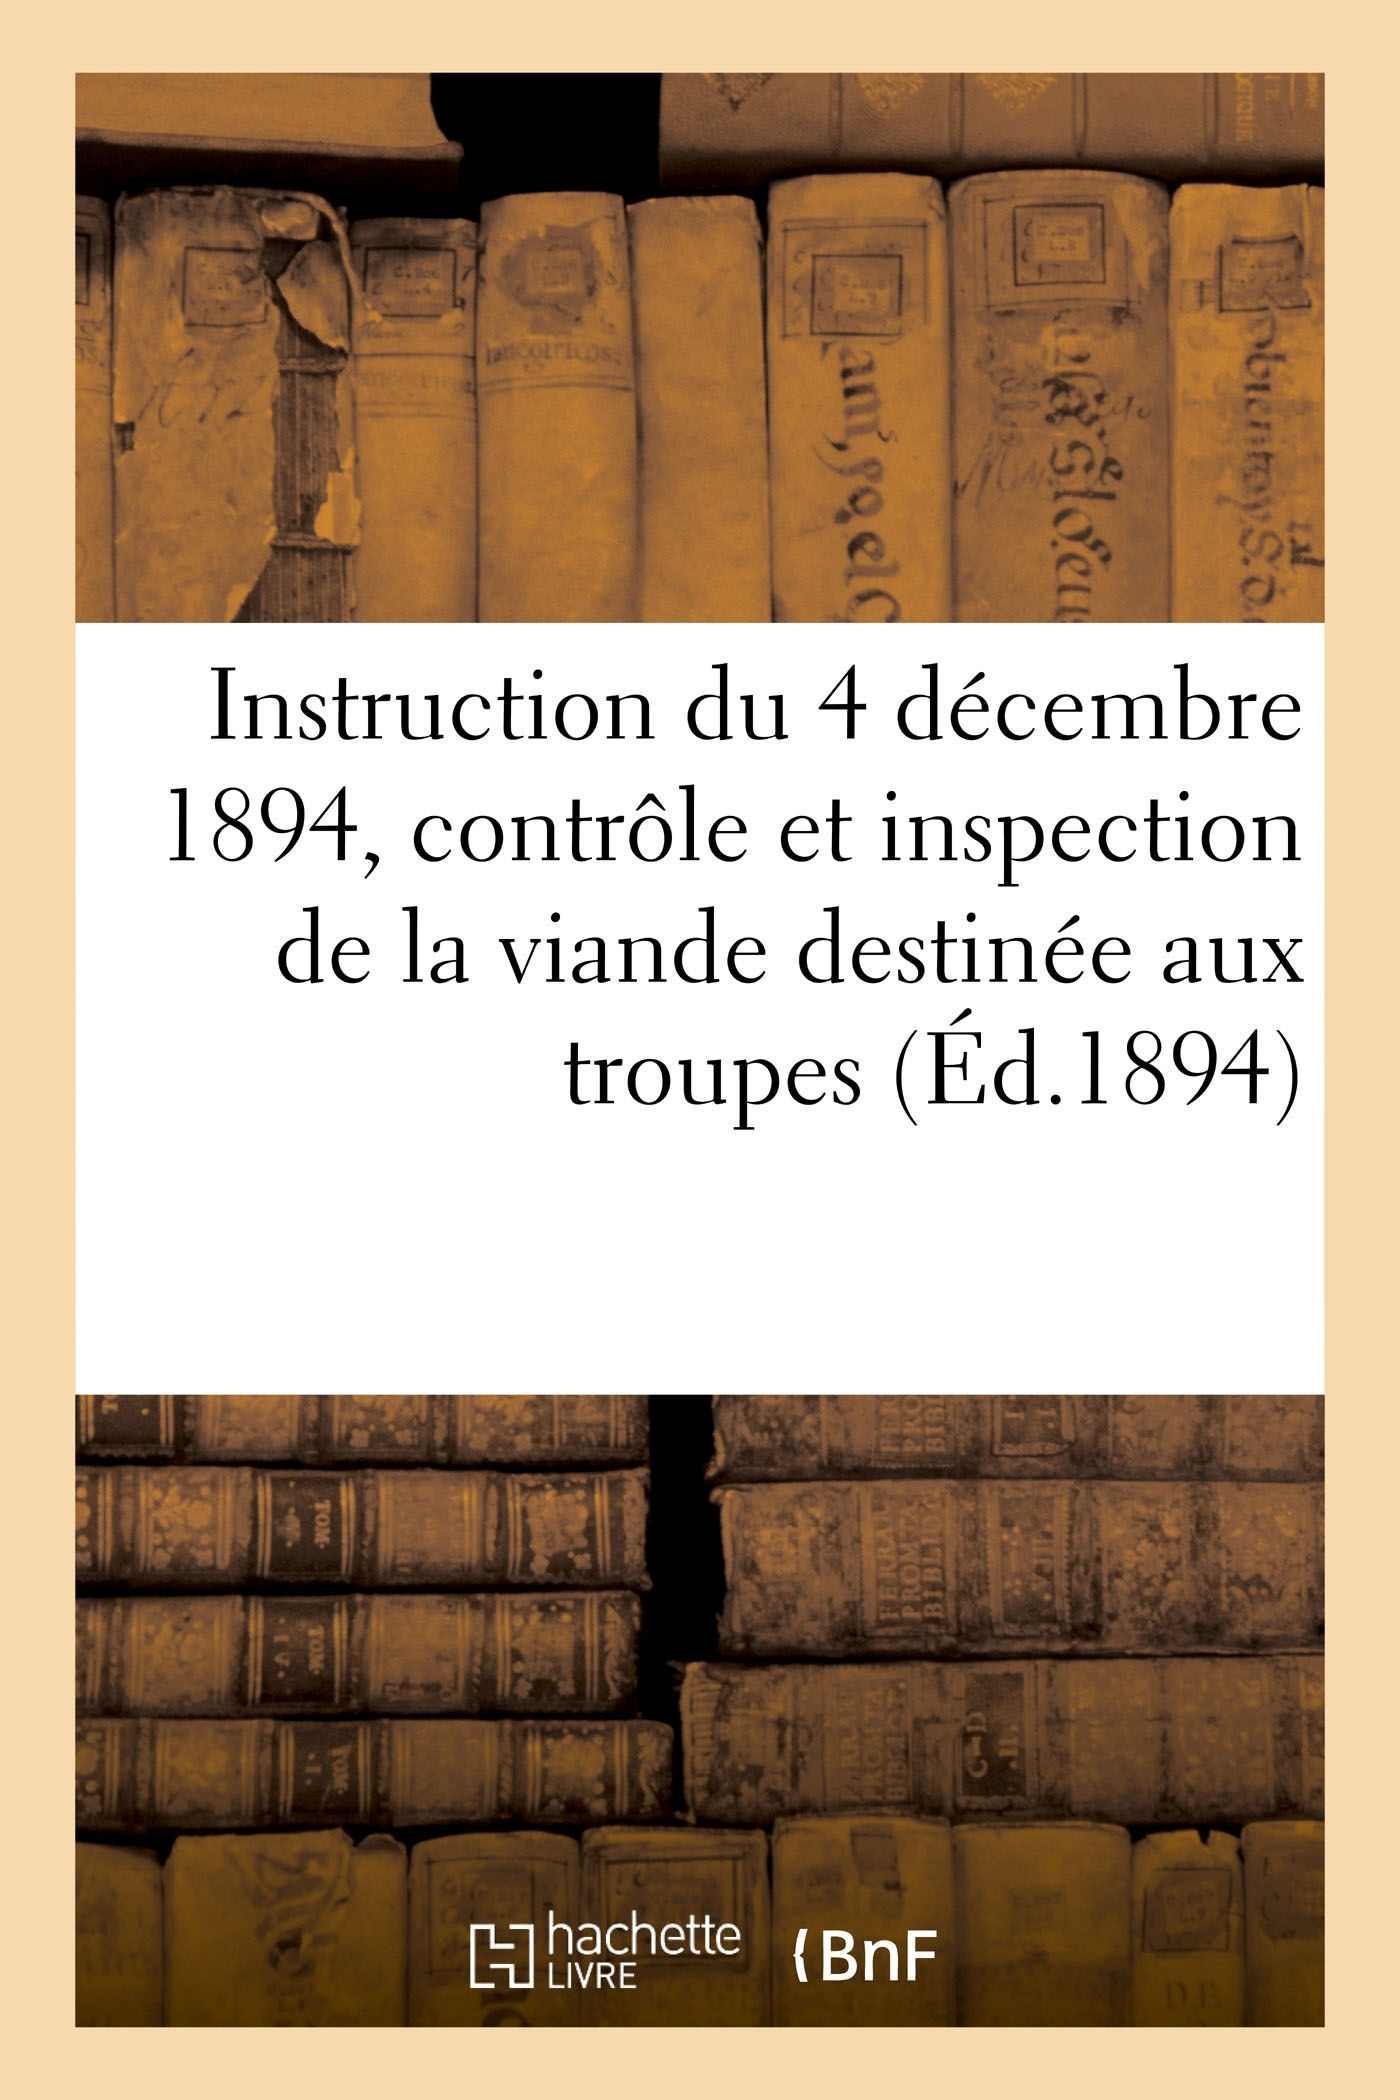 INSTRUCTION DU 4 DECEMBRE 1894 SUR LE CONTROLE ET L'INSPECTION DE LA VIANDE DESTINEE - A L'ALIMENTAT